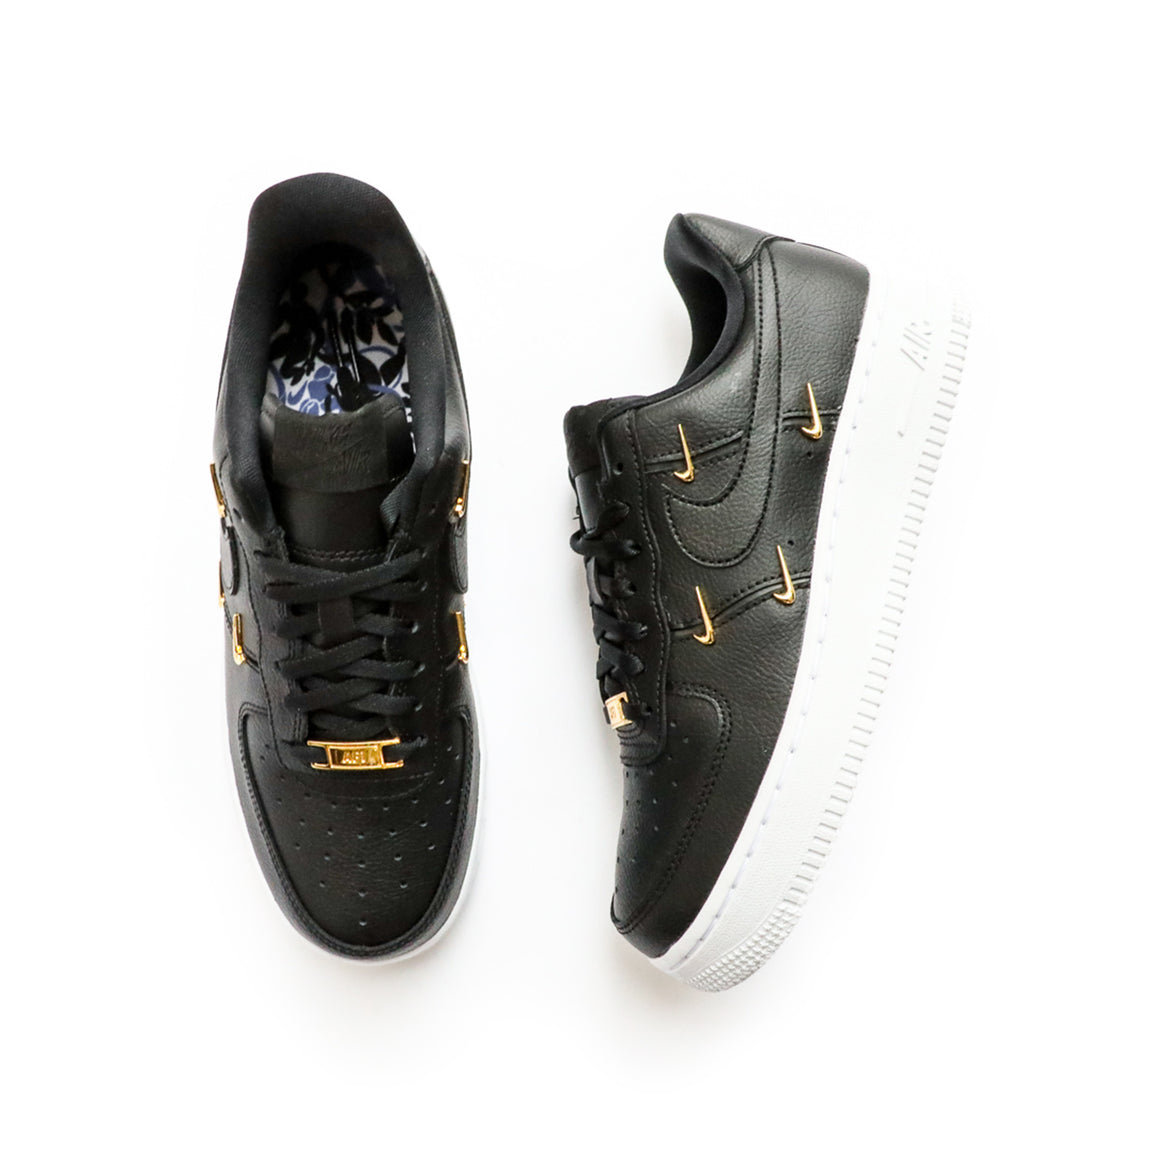 Nike Women's Air Force 1 '07 LX (Black/Metallic Gold/Hyper Royal) - Nike Women's Air Force 1 '07 LX (Black/Metallic Gold/Hyper Royal) -